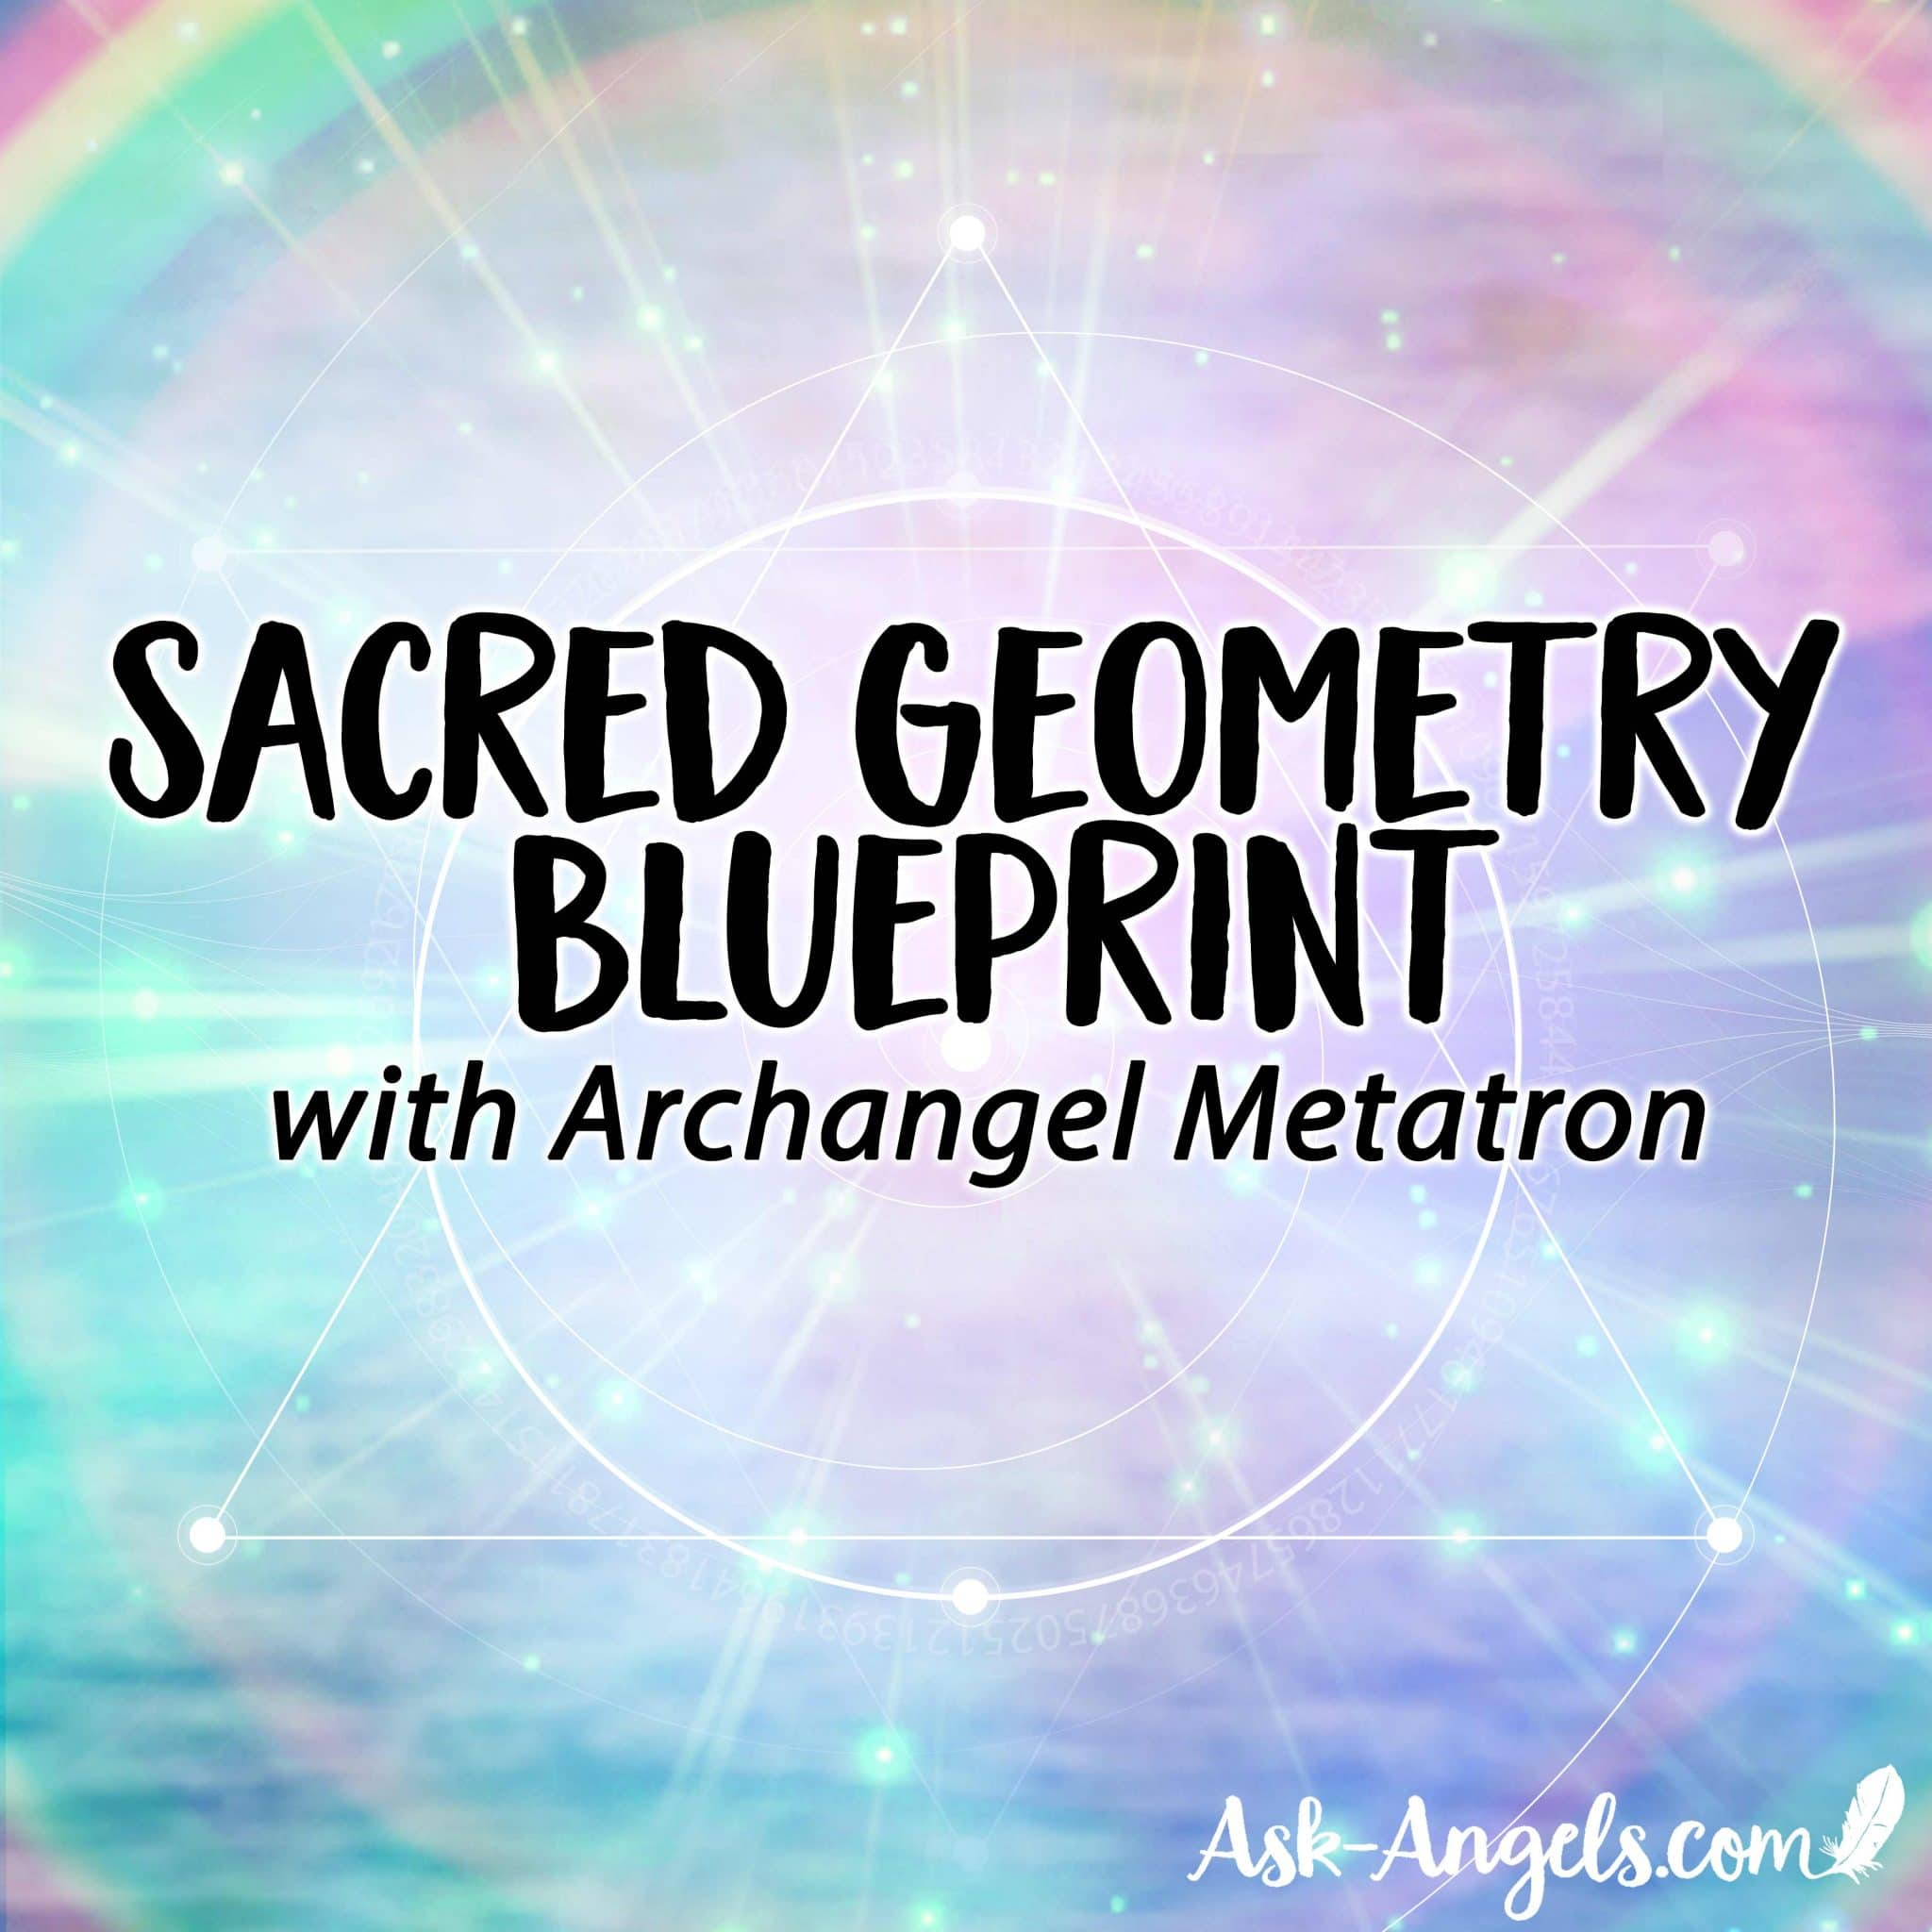 Sacred Geometry Blueprint